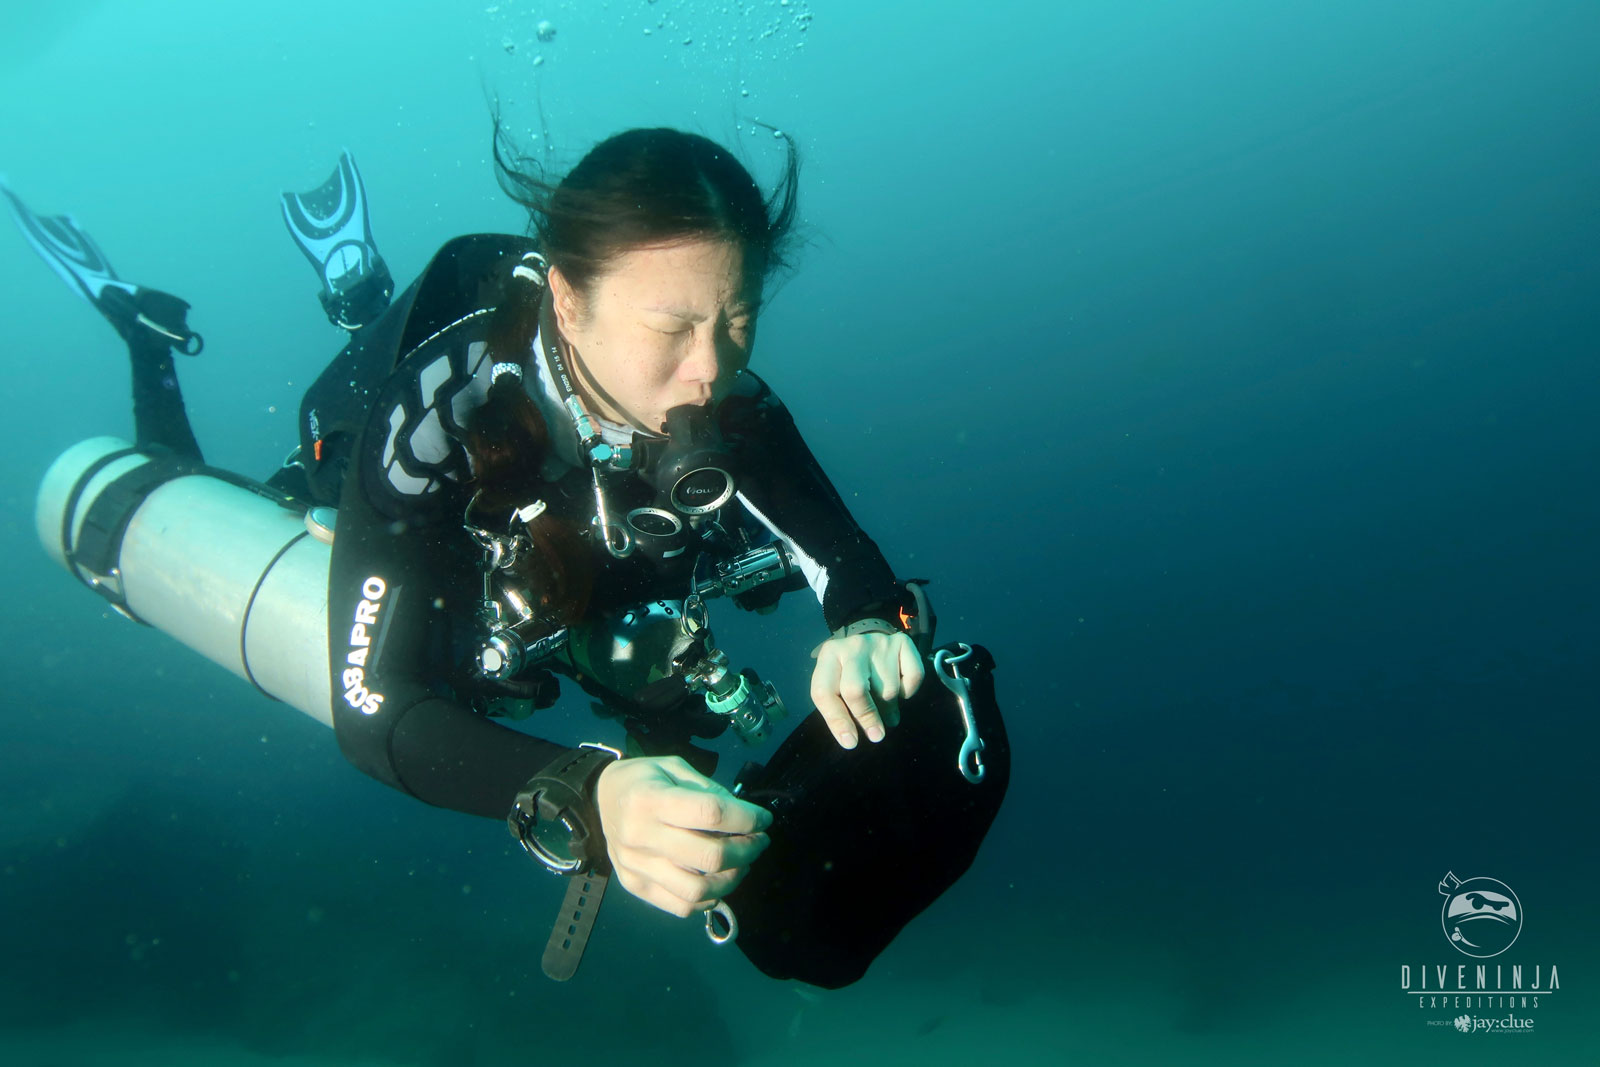 Diving with manta rays in Baja California Sur, Mexico